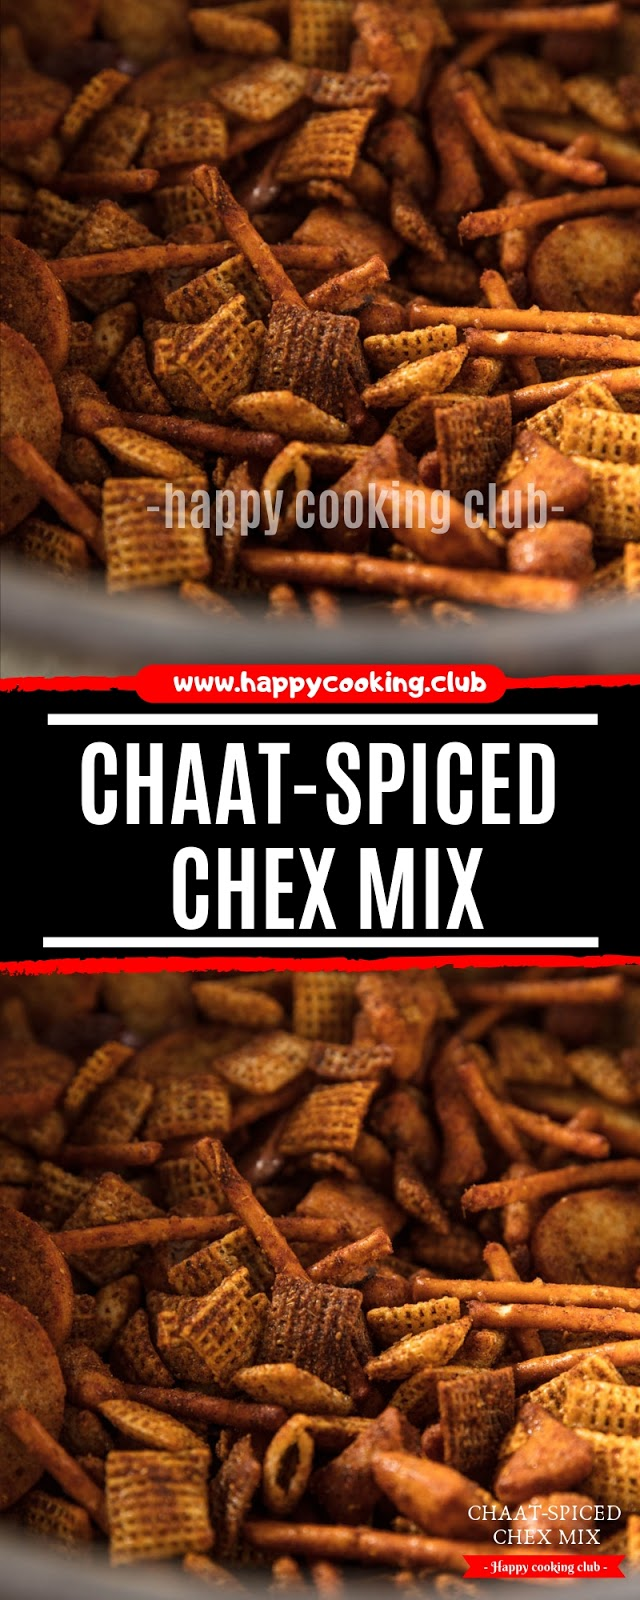 Chaat-Spiced Chex Mix